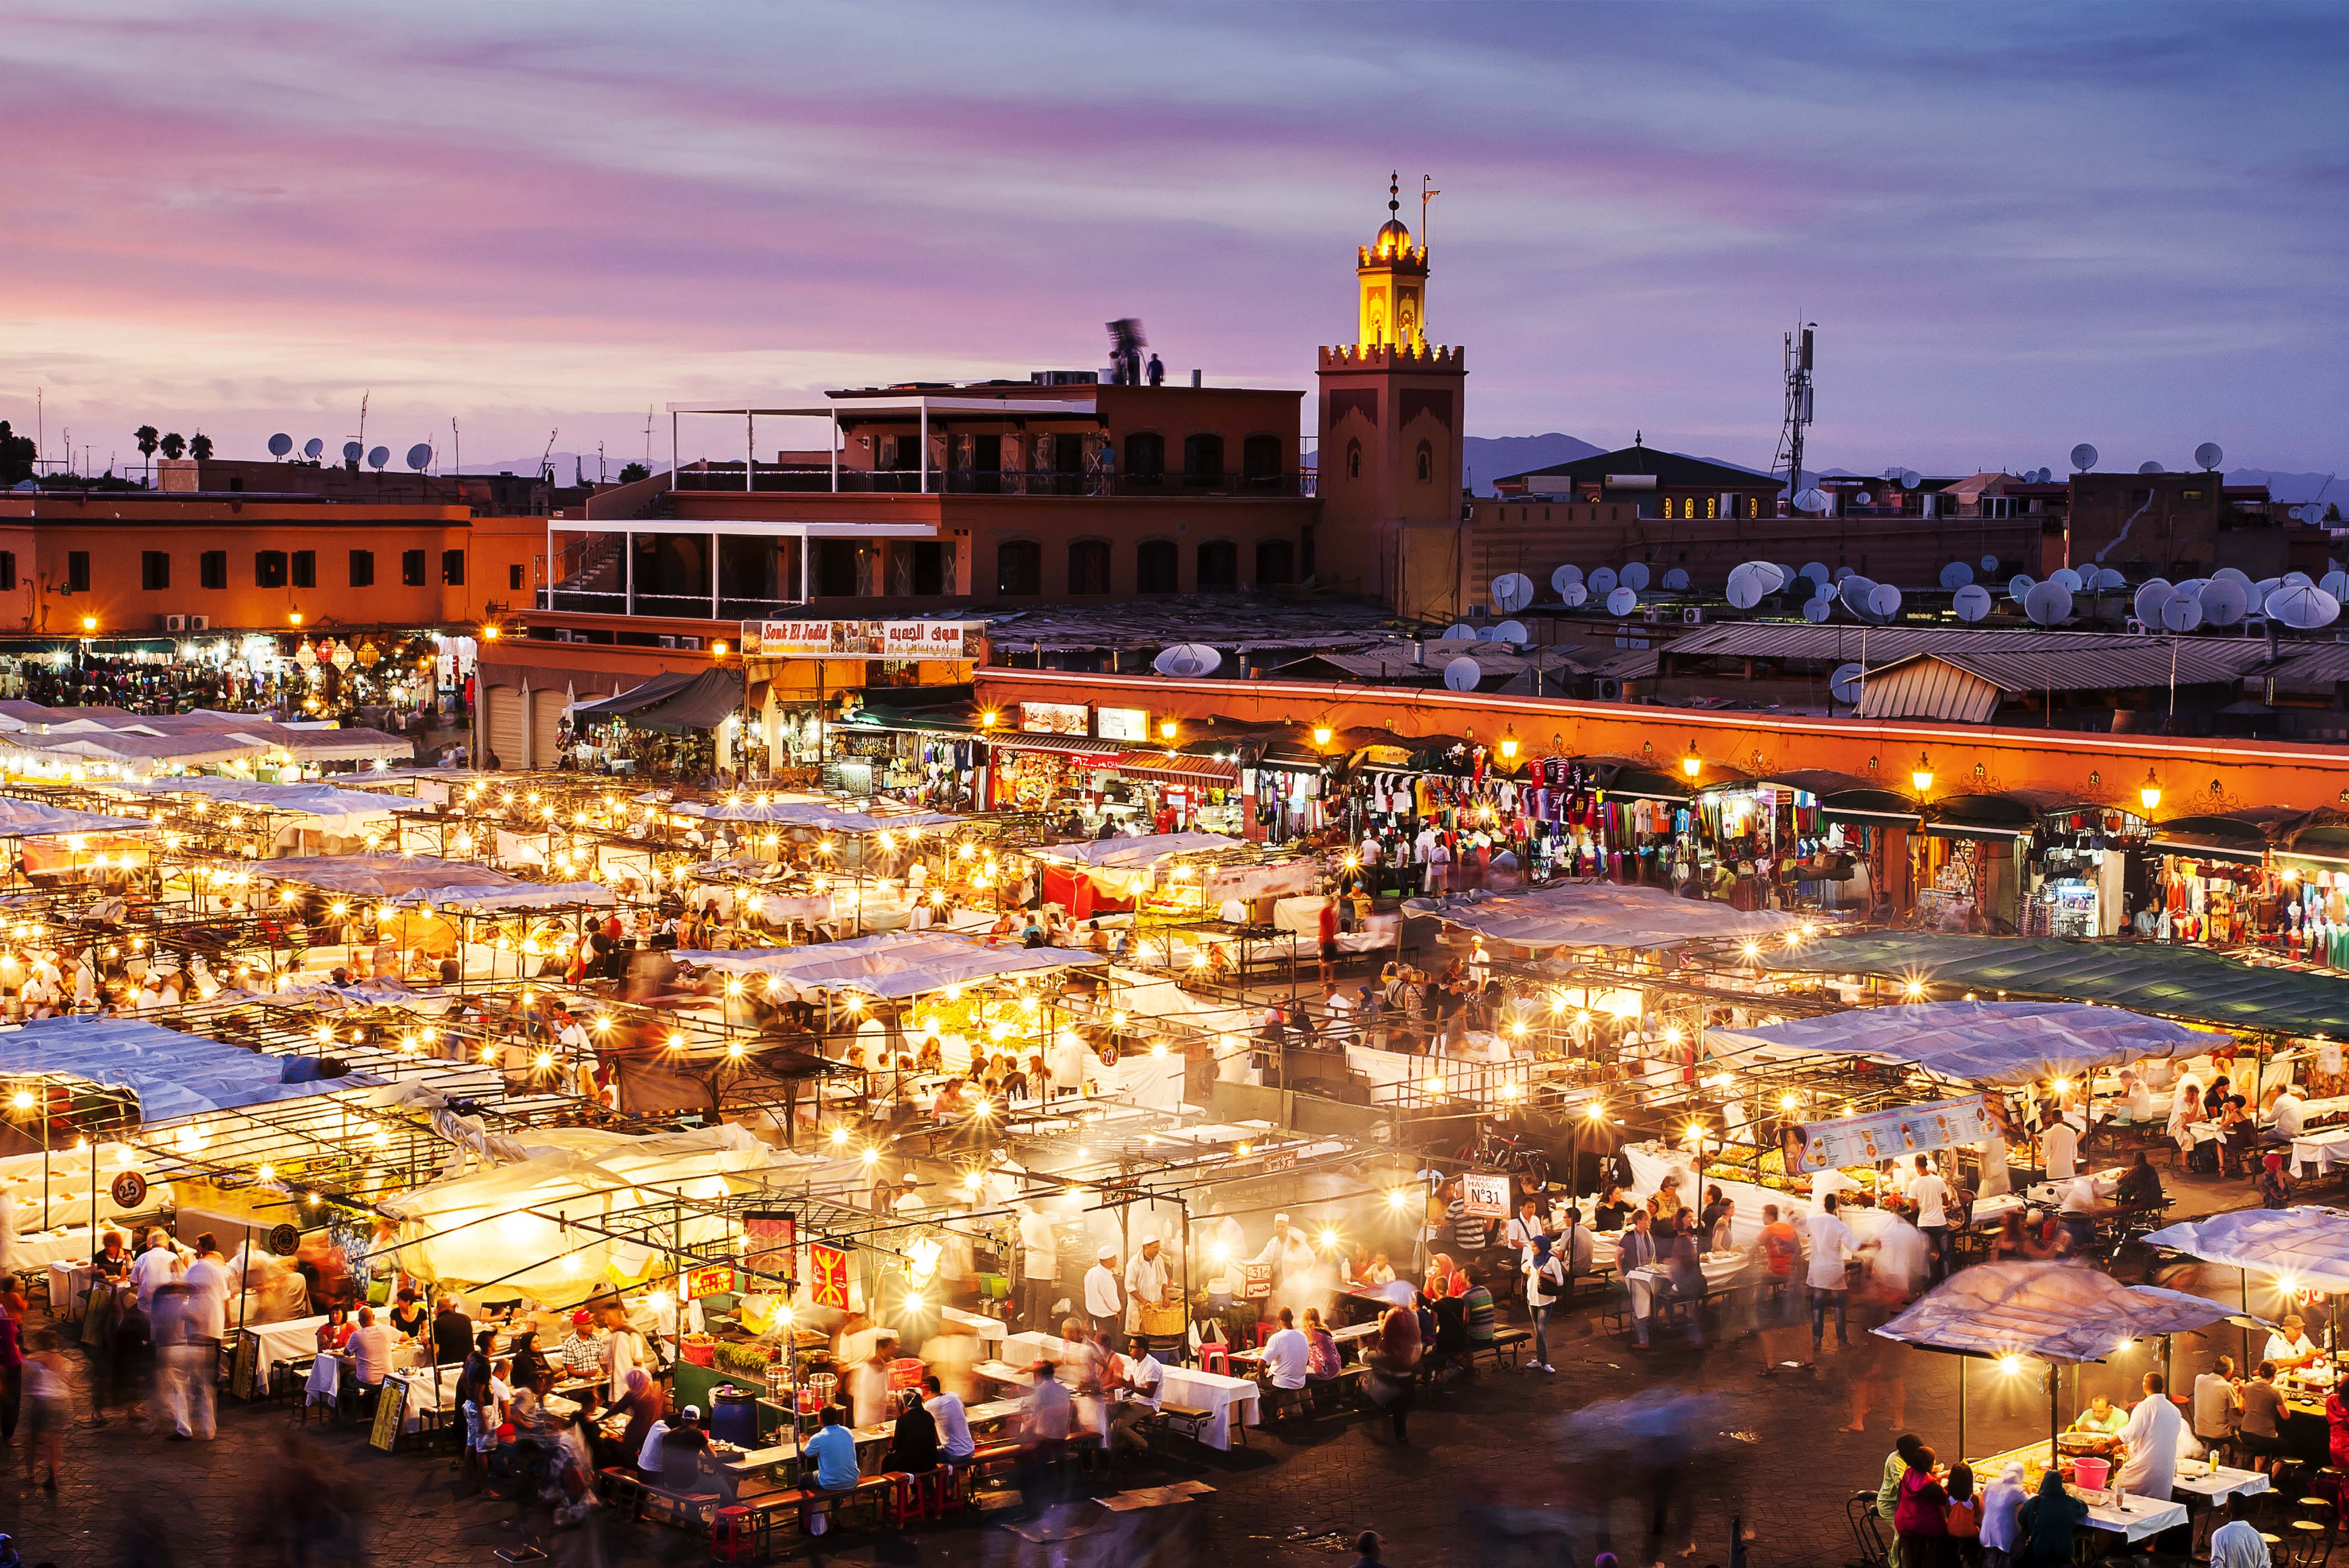 Jemaa el-Fna square in Marrakech,dining table in the Moroccan desert, Morocco